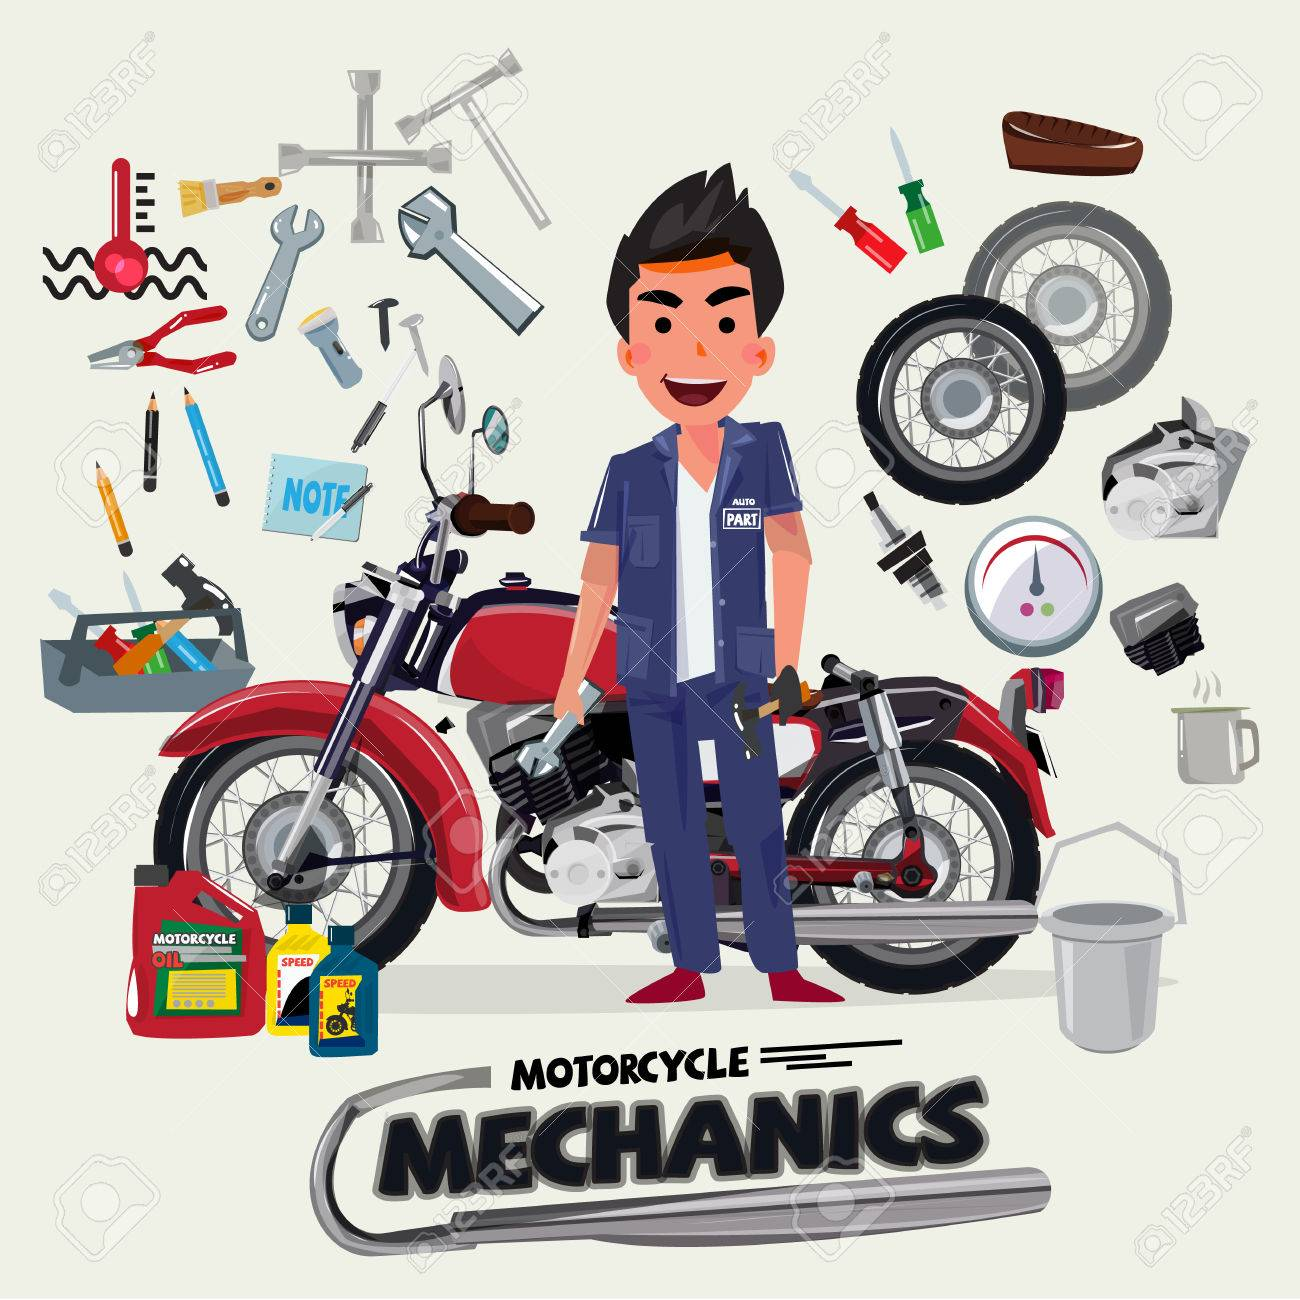 motorcycle mechanics with tool kit character design vector illustration stock vector 69145019